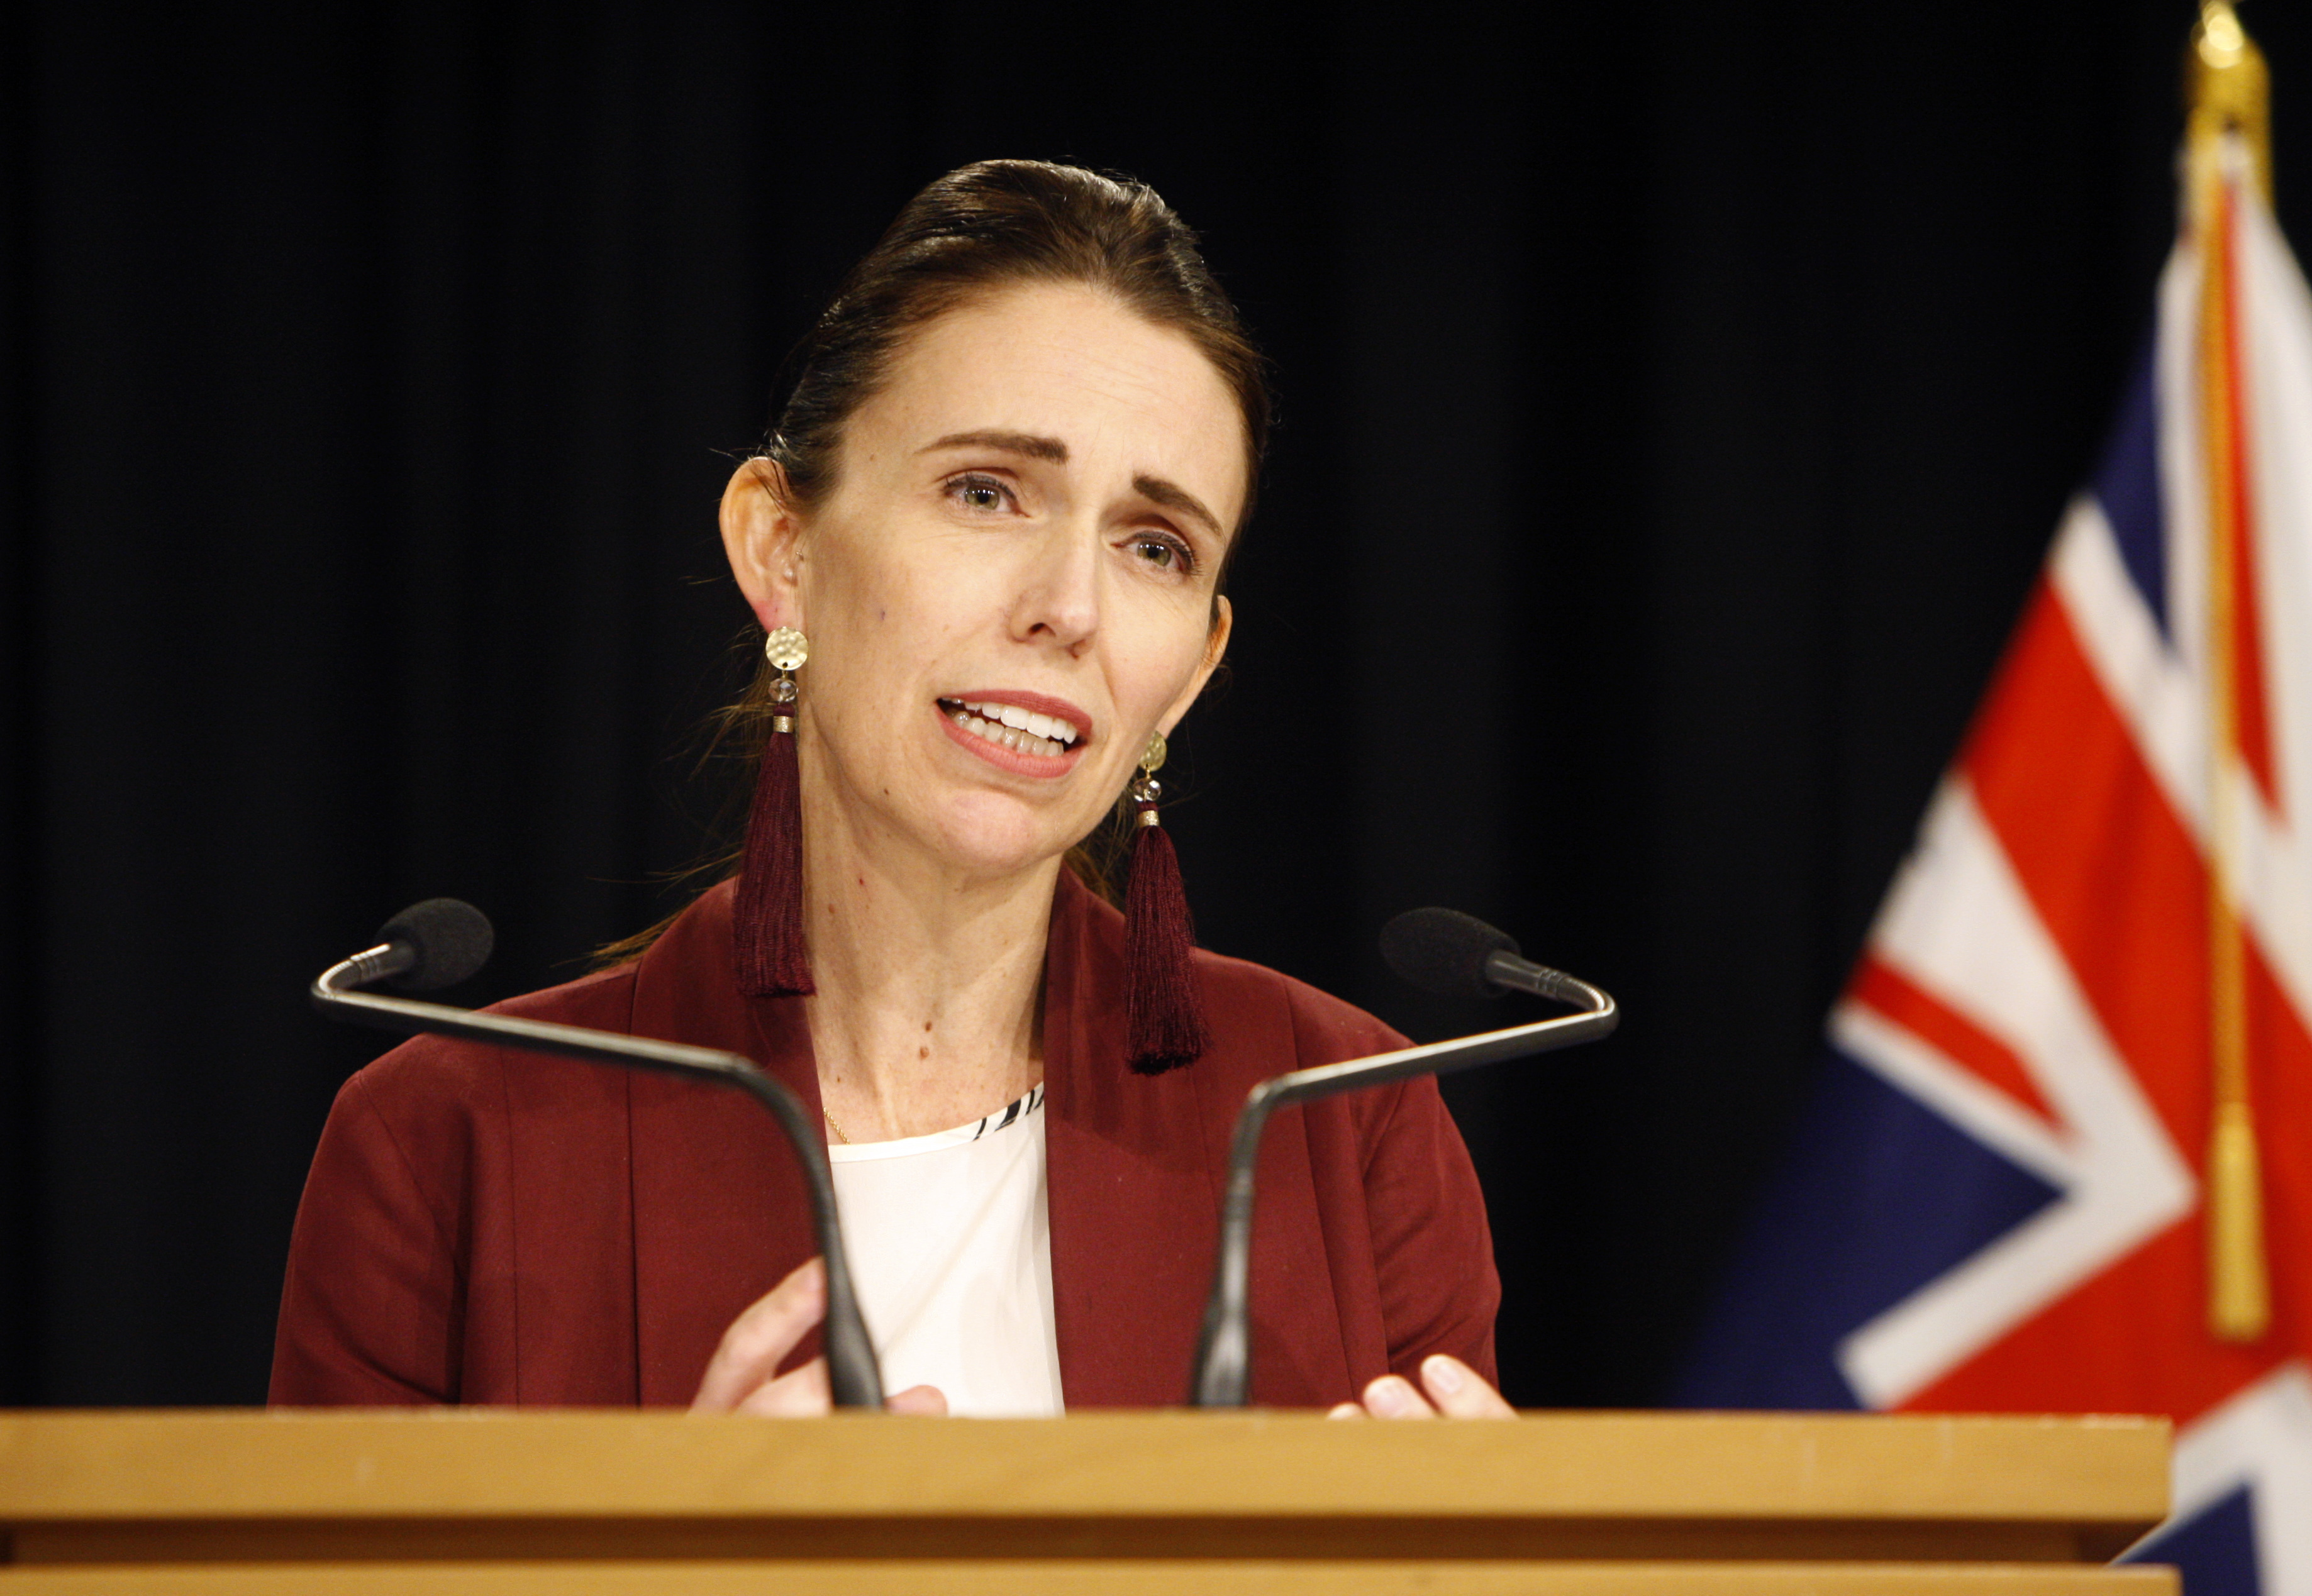 New Zealand Finally Moves To Decriminalise Abortion